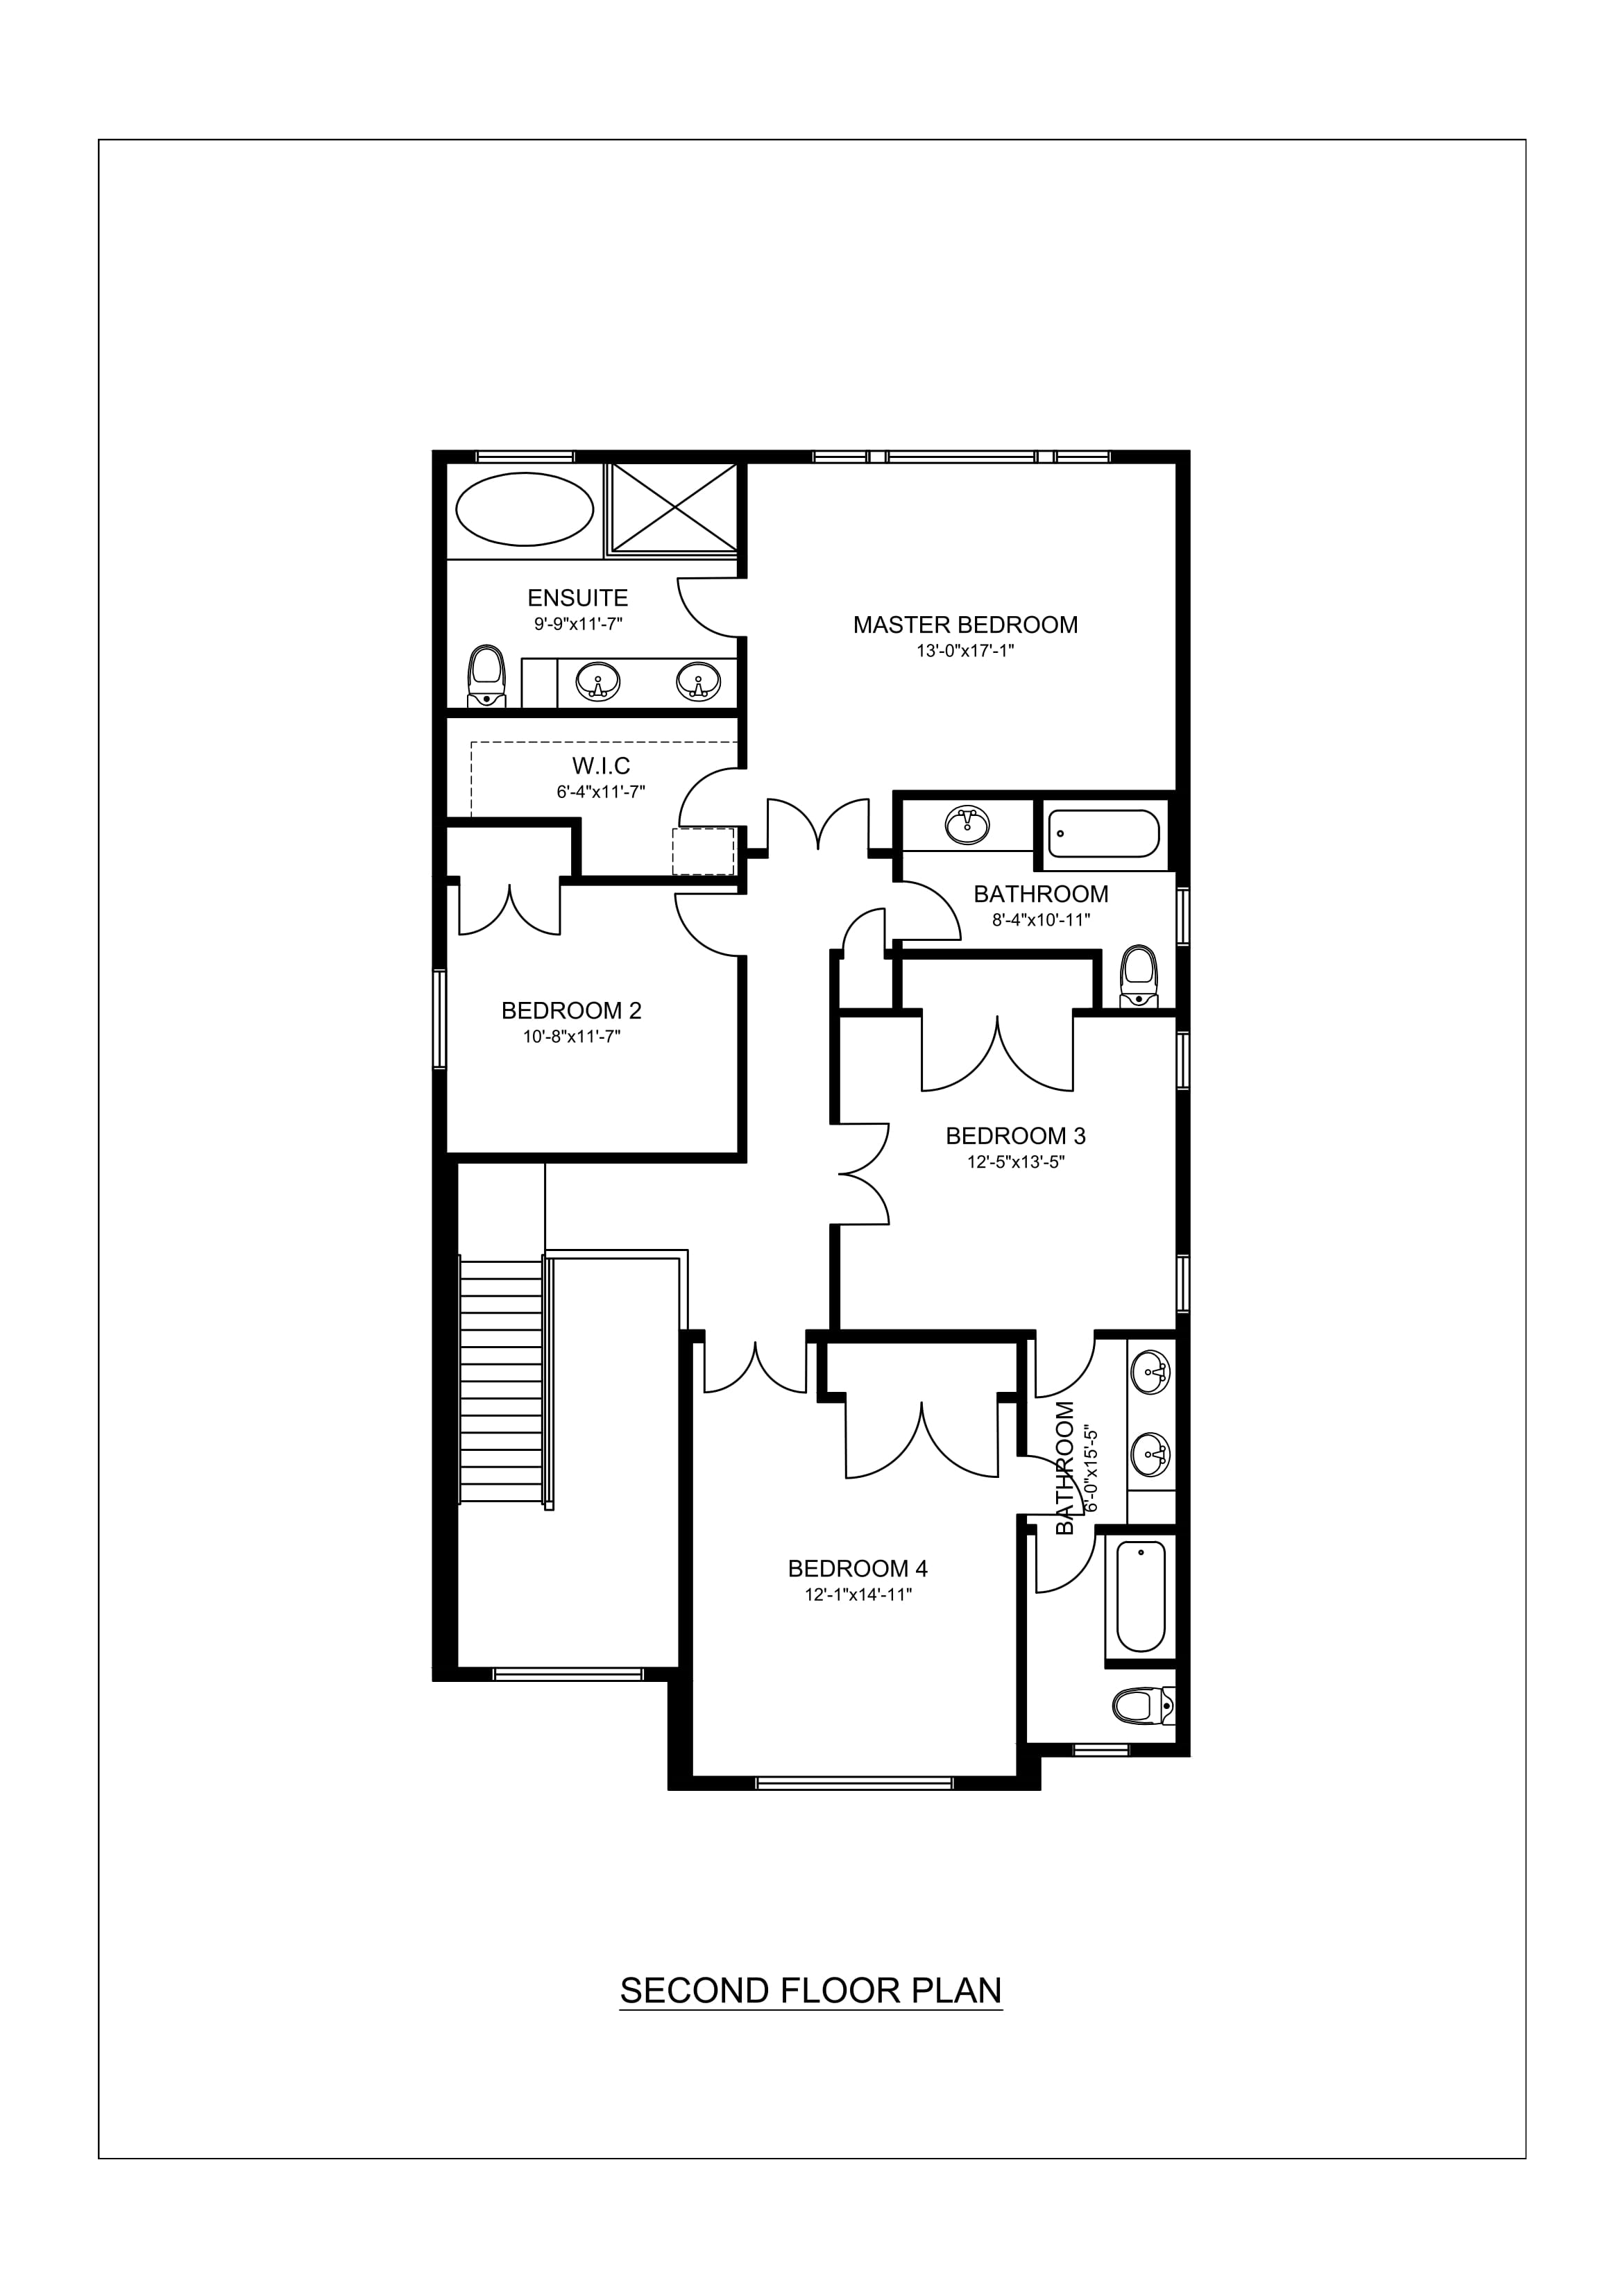 Real estate 2d floor plans design rendering samples for Sample building plans